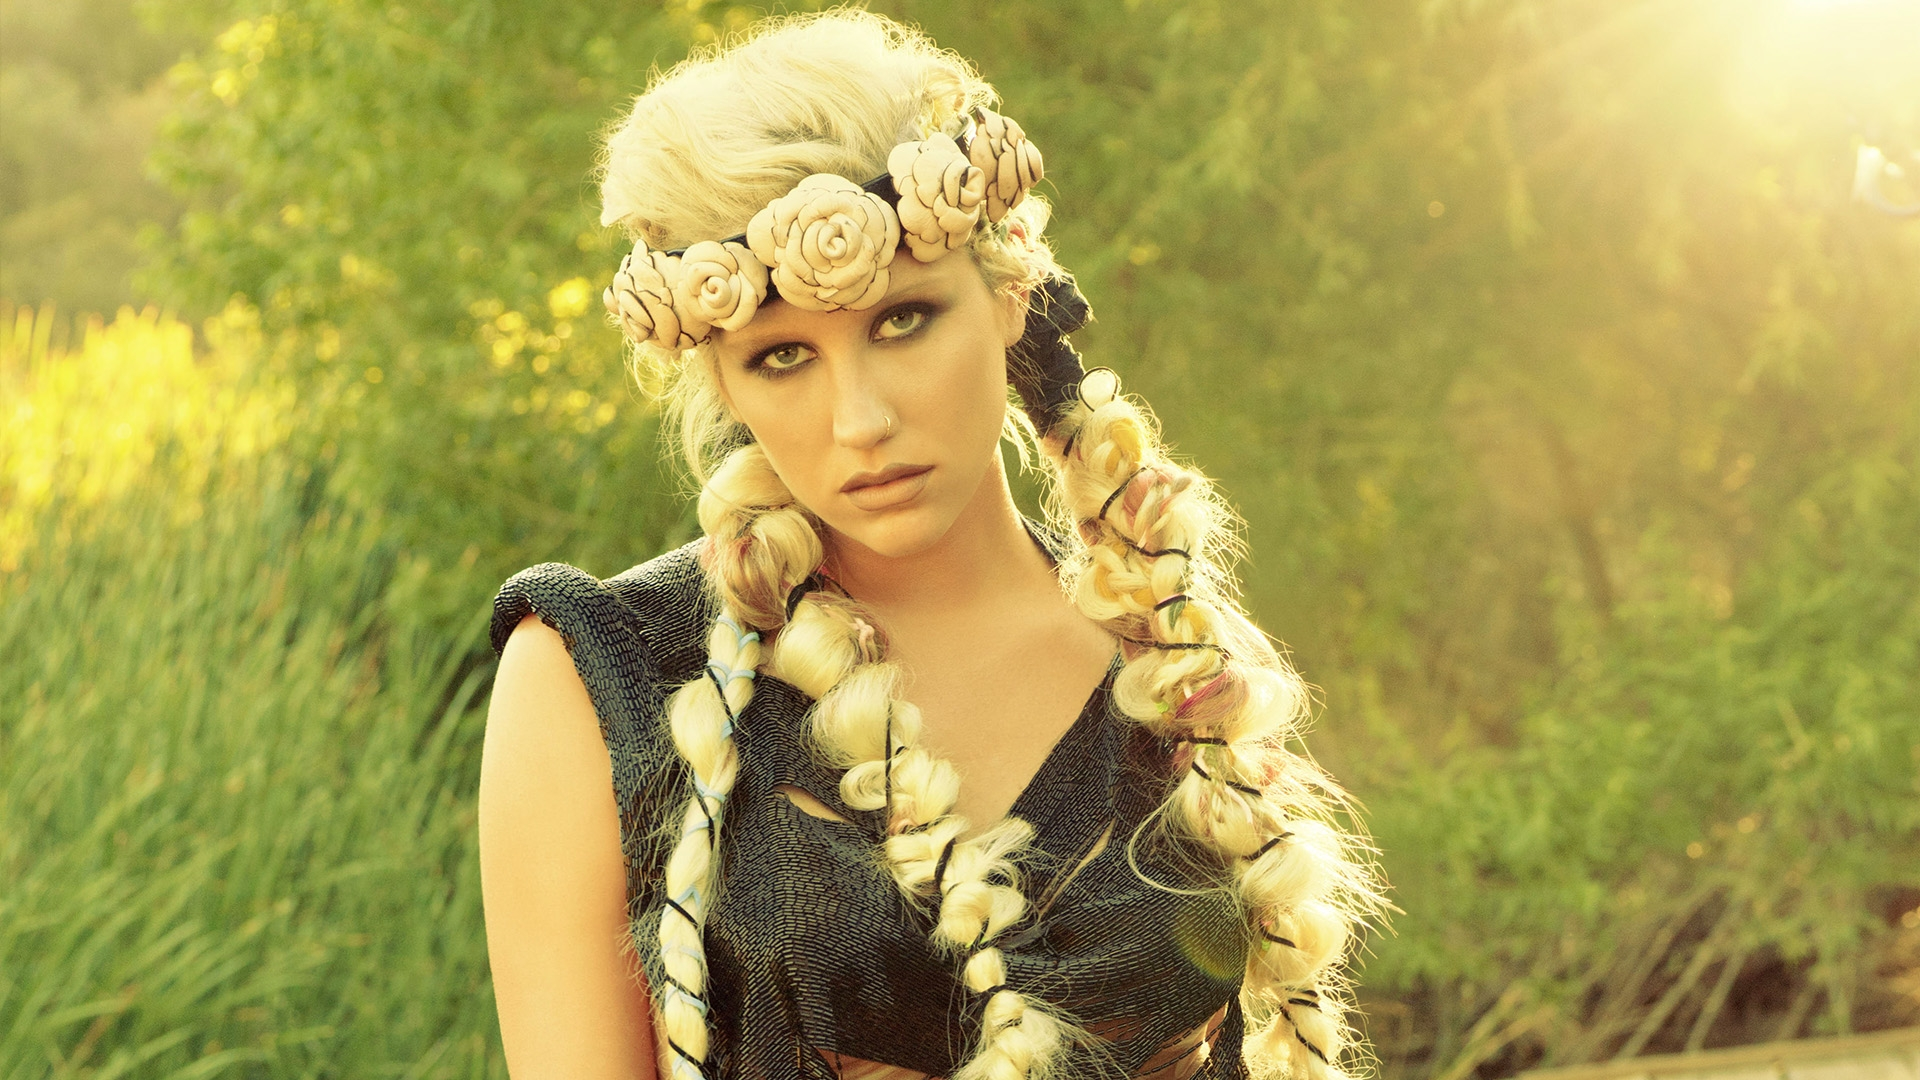 kesha widescreen computer wallpaper 504